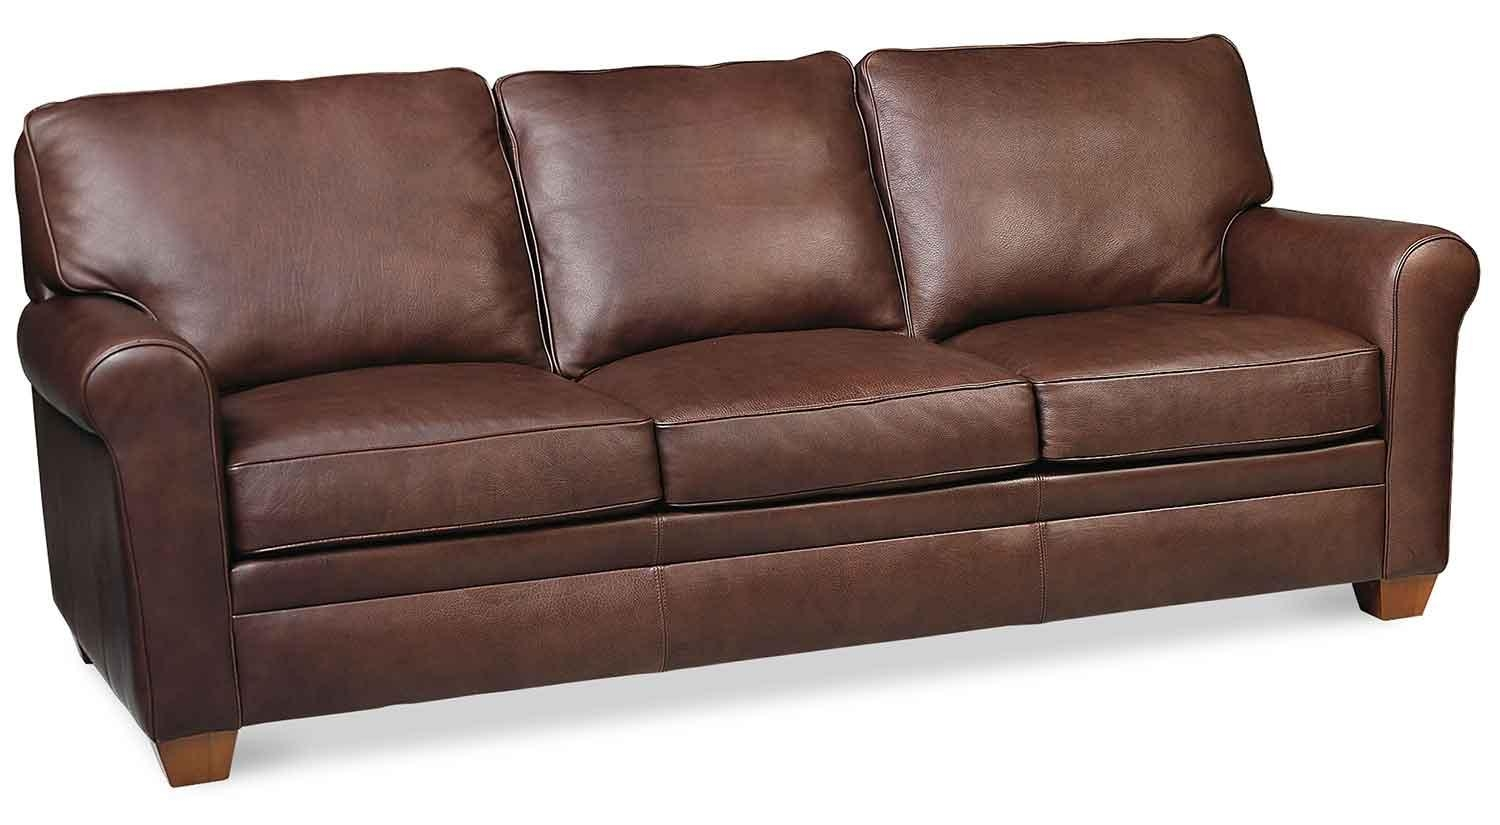 Circle Furniture – Braxton Sofa | Leather Sofas Danvers | Circle For Braxton Sofas (View 2 of 20)